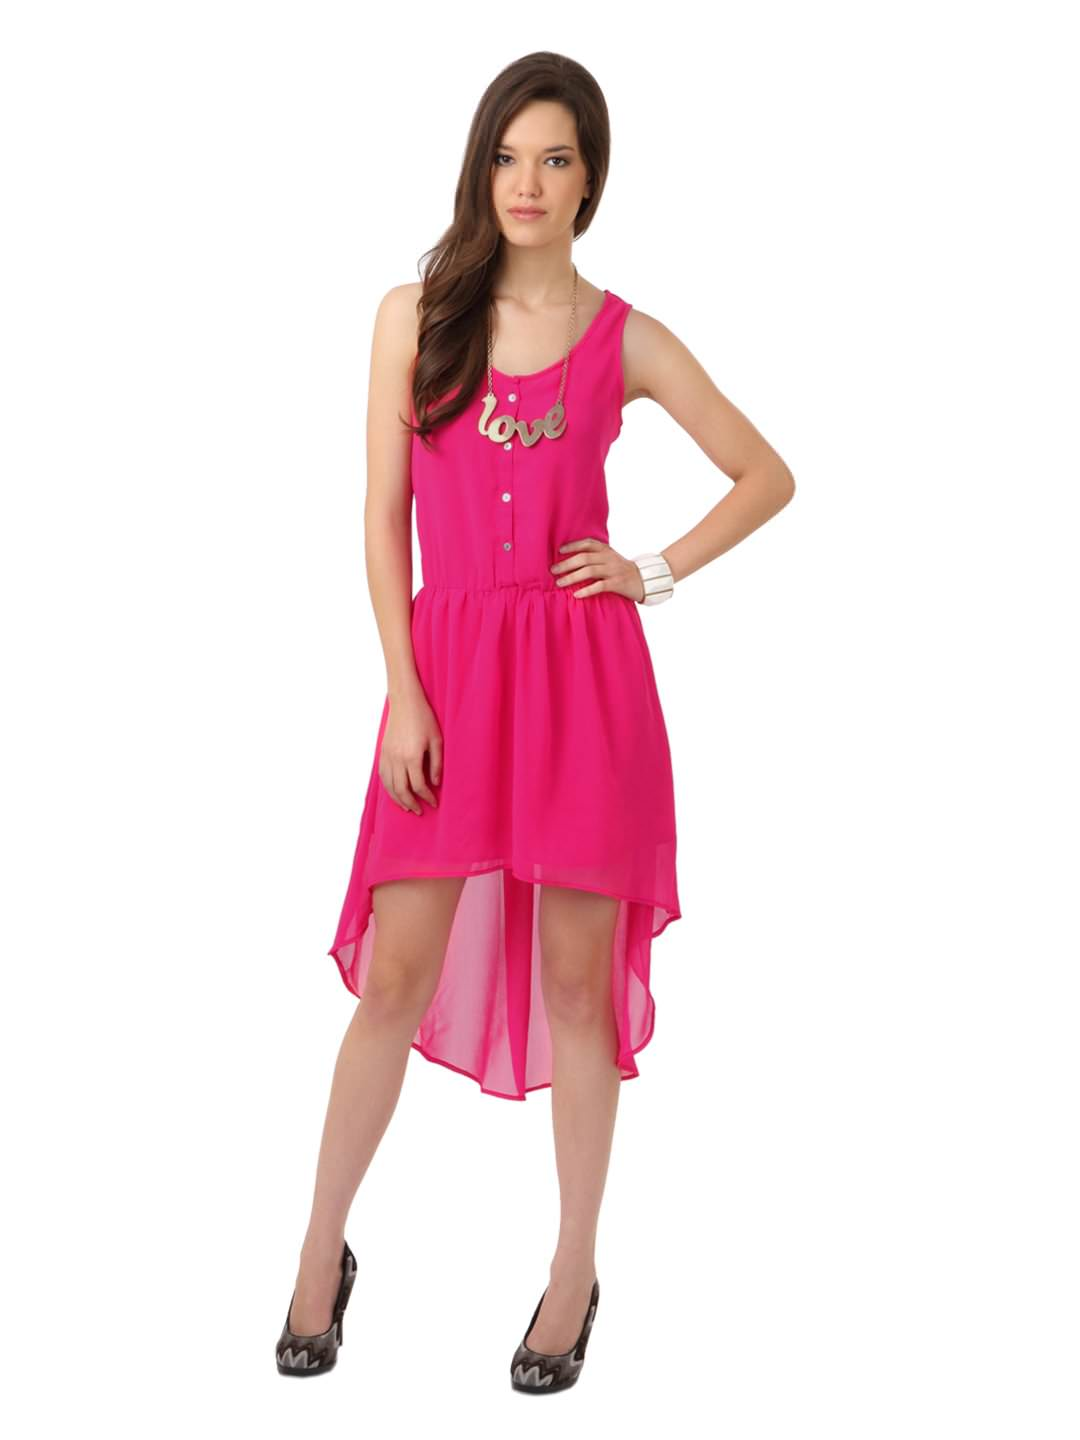 ... pink dresses for women photo - 4 ... QAXKABY